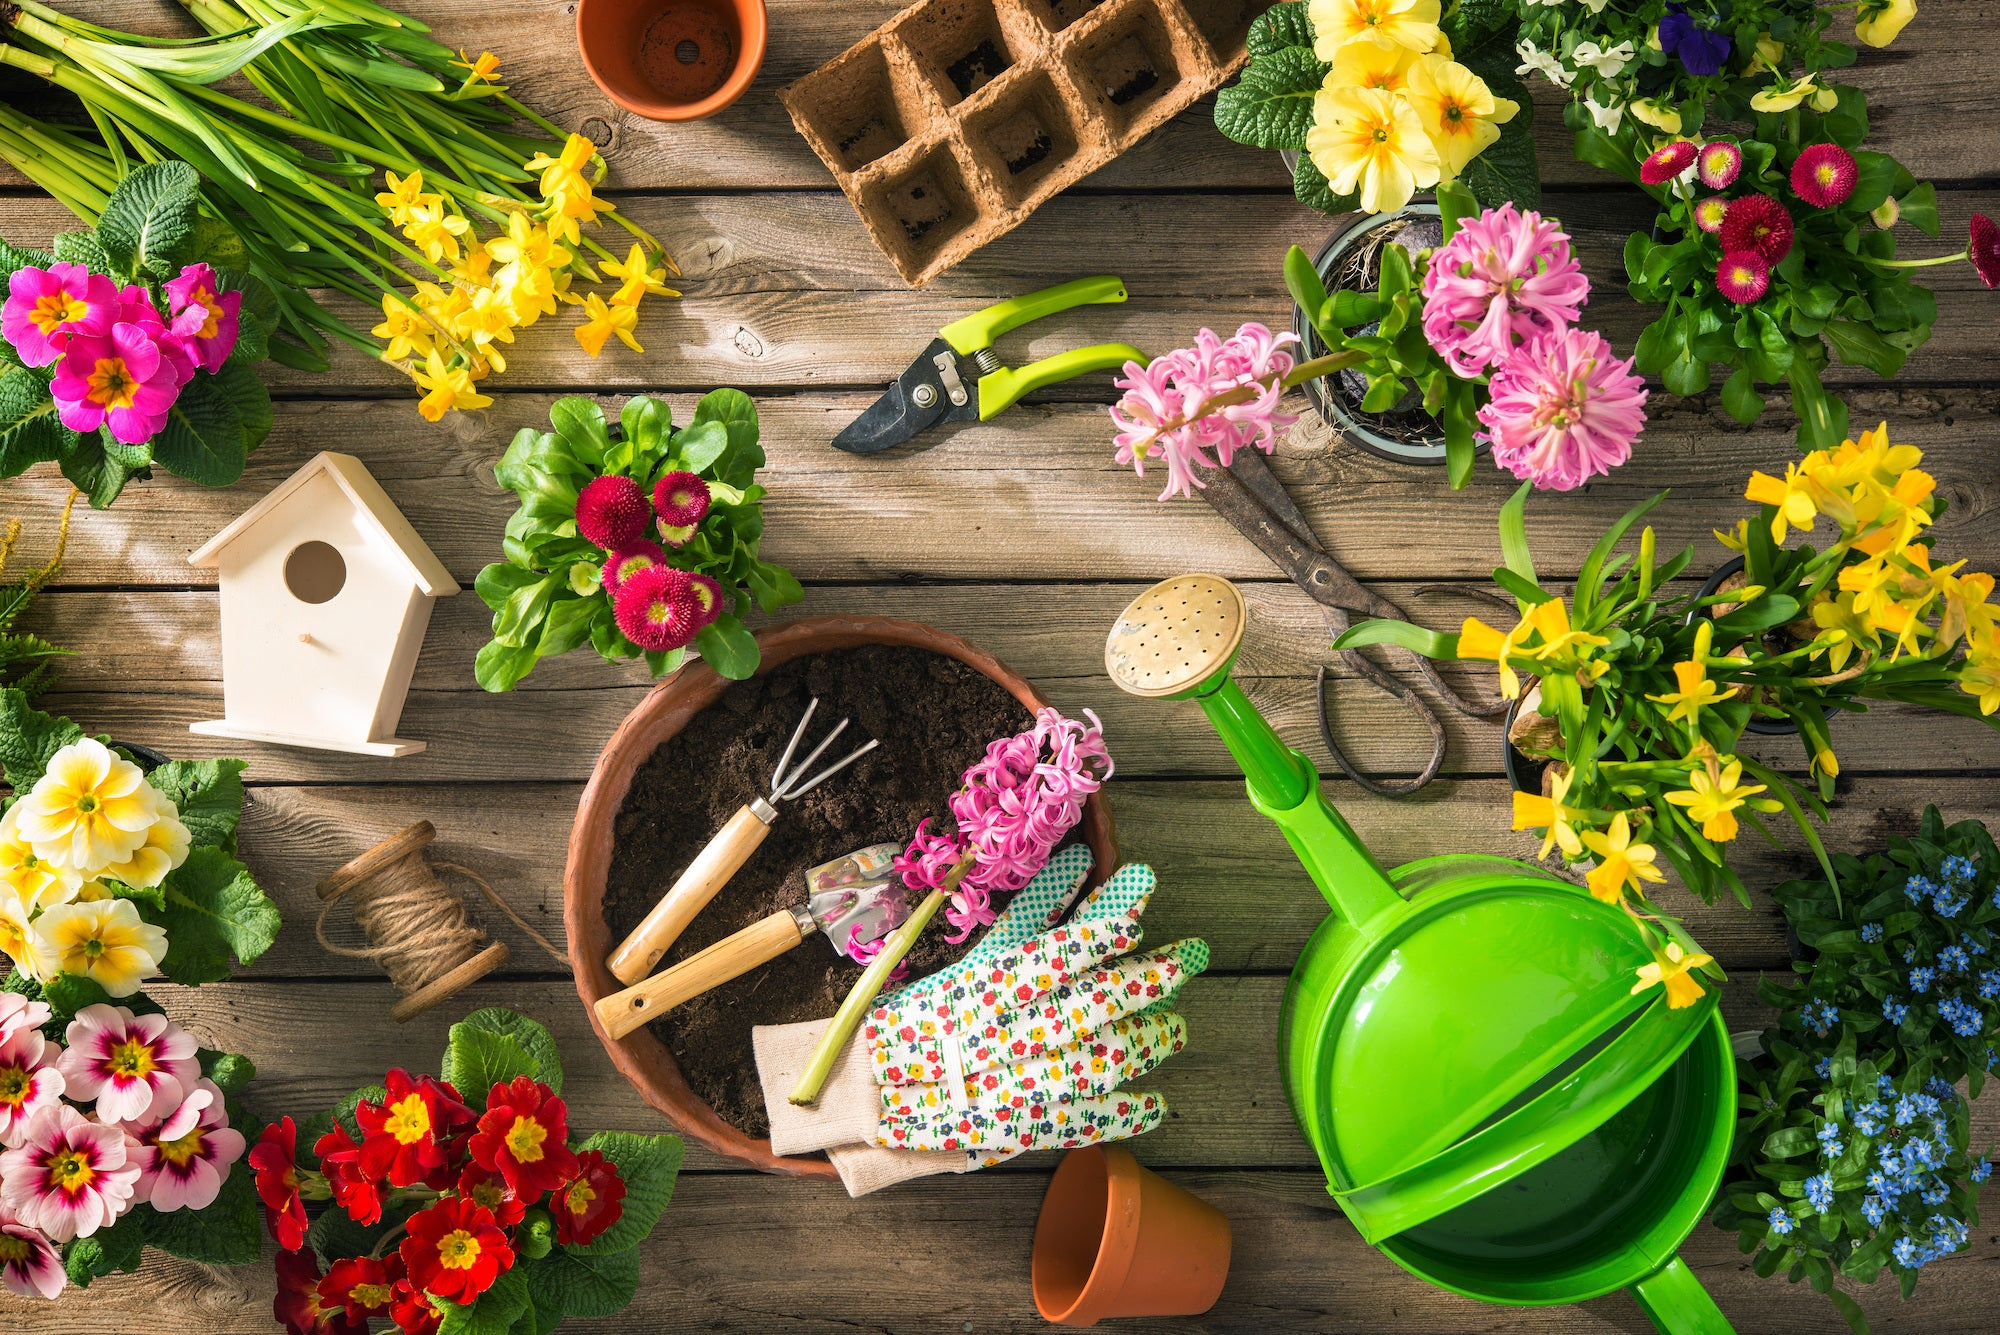 Useful Gardening Tools